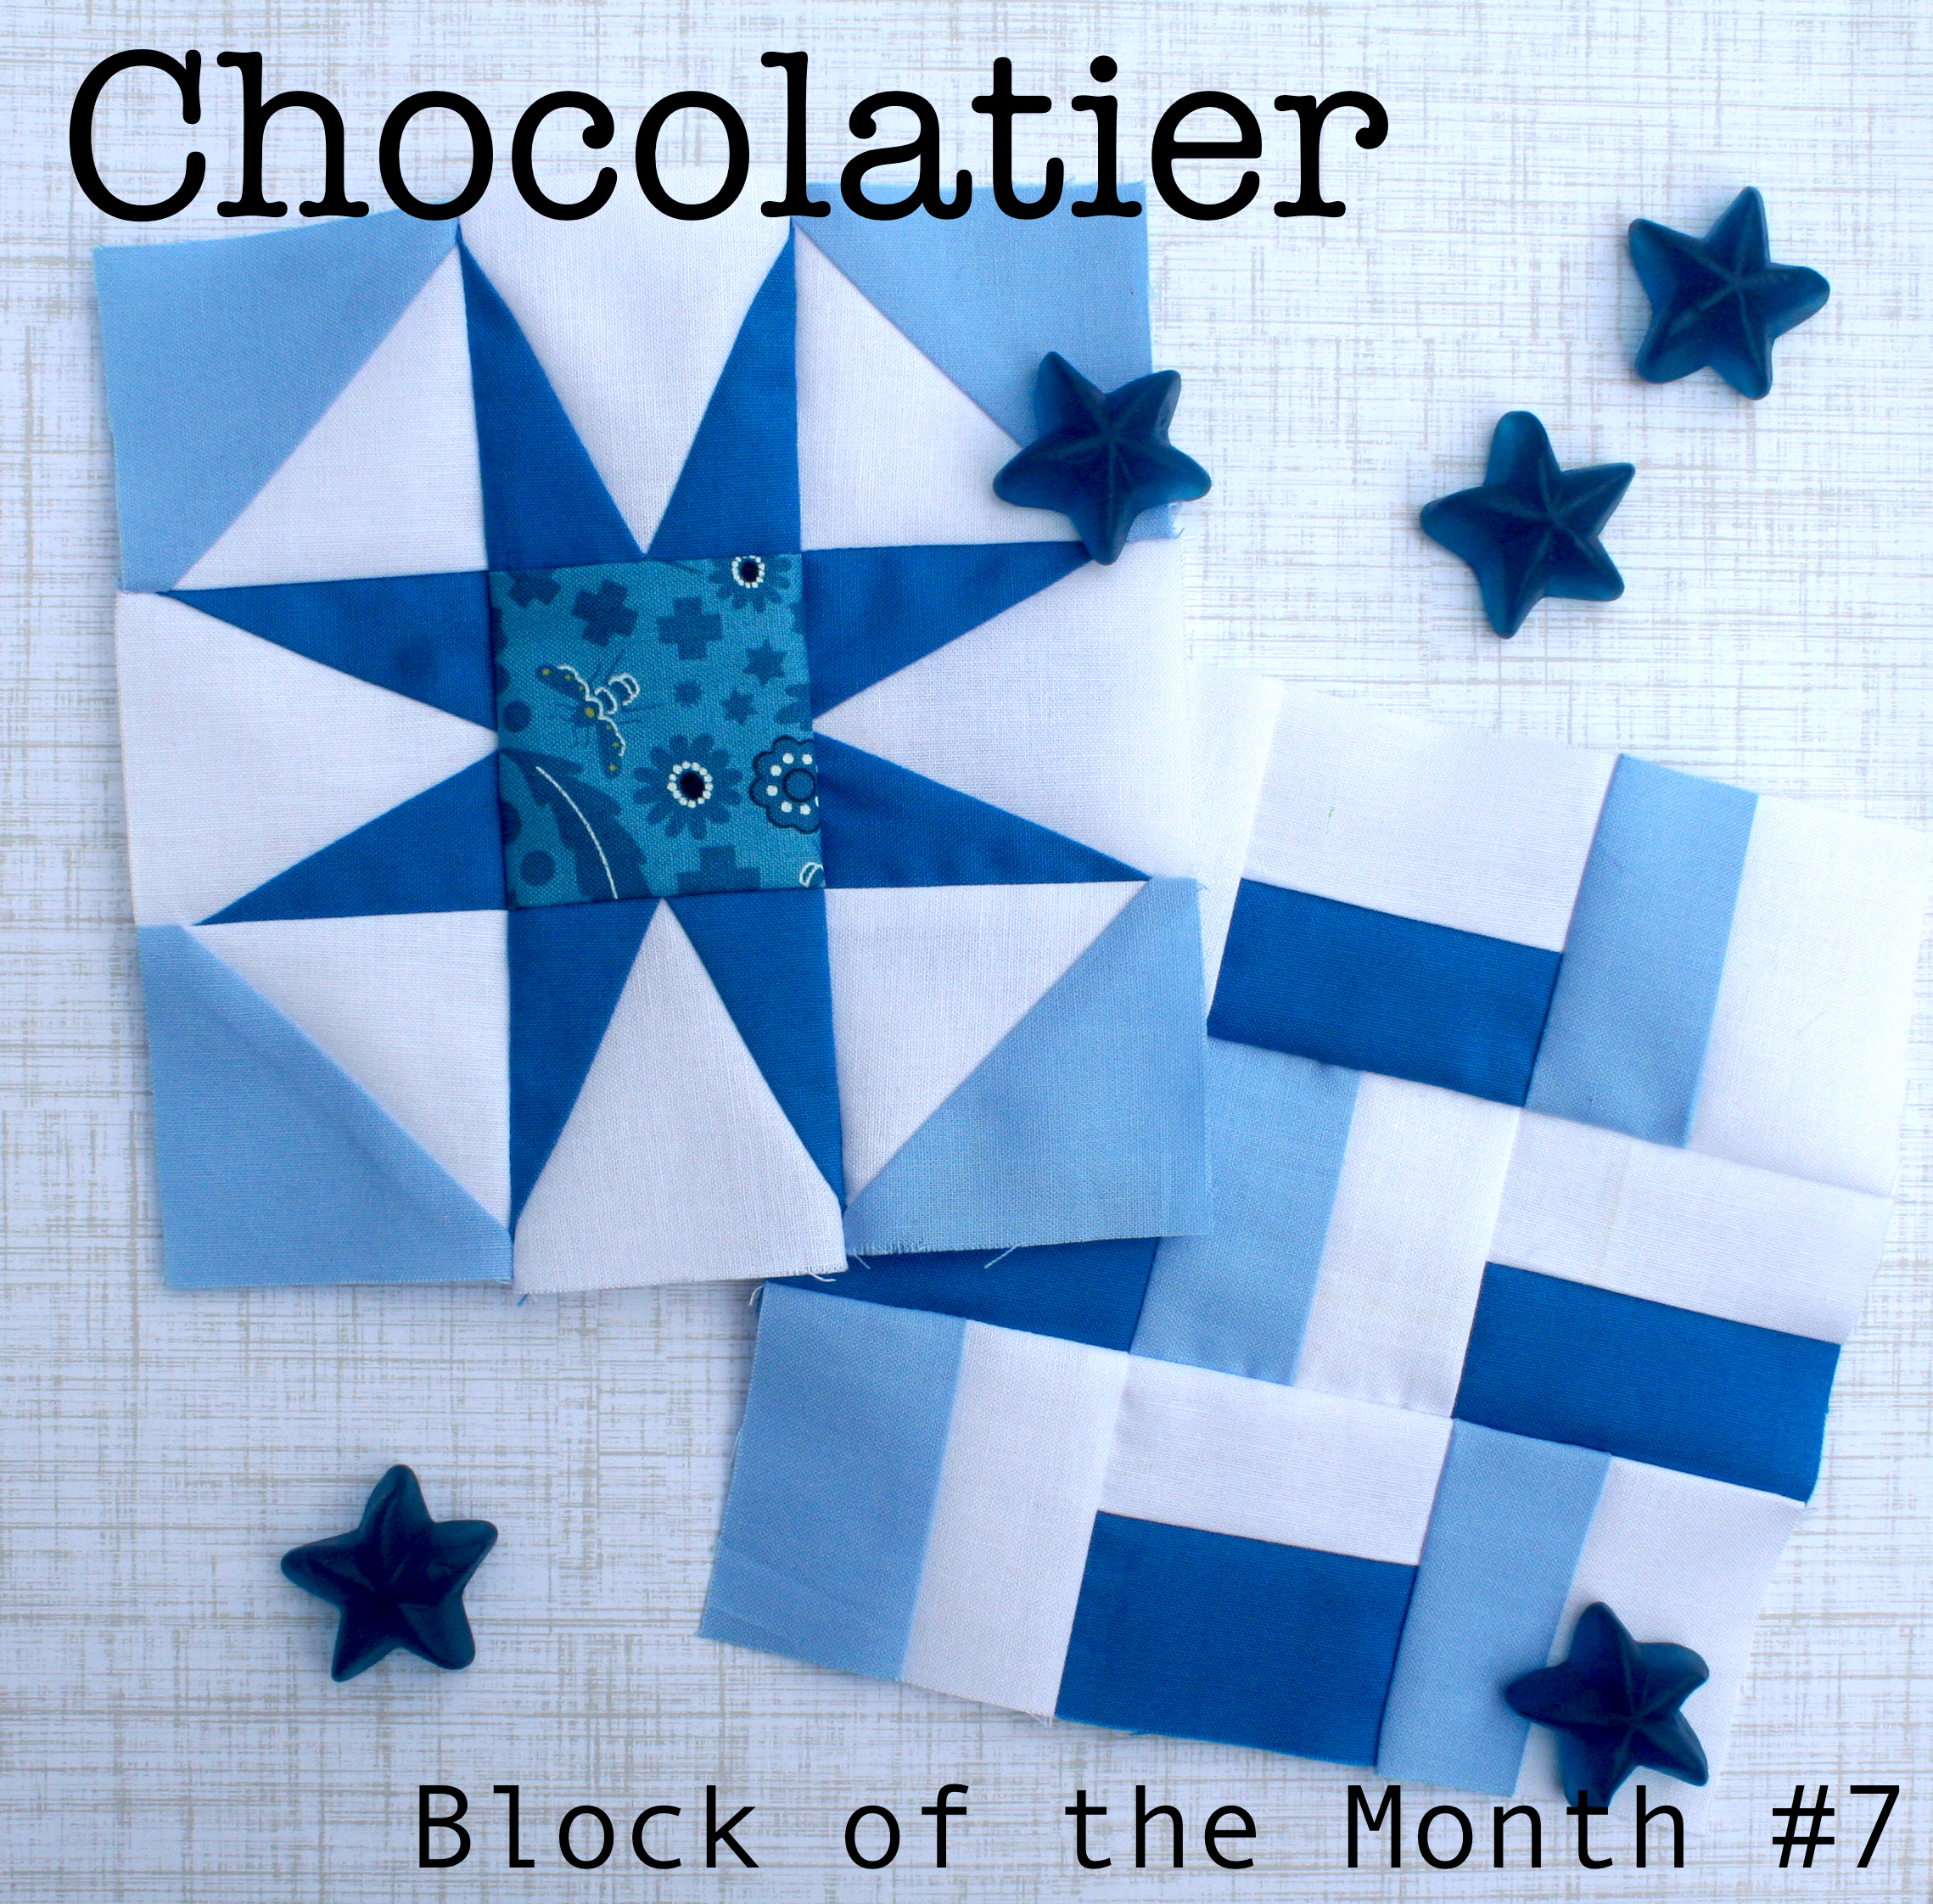 Chocolatier Block of the Month #7 2 blocks